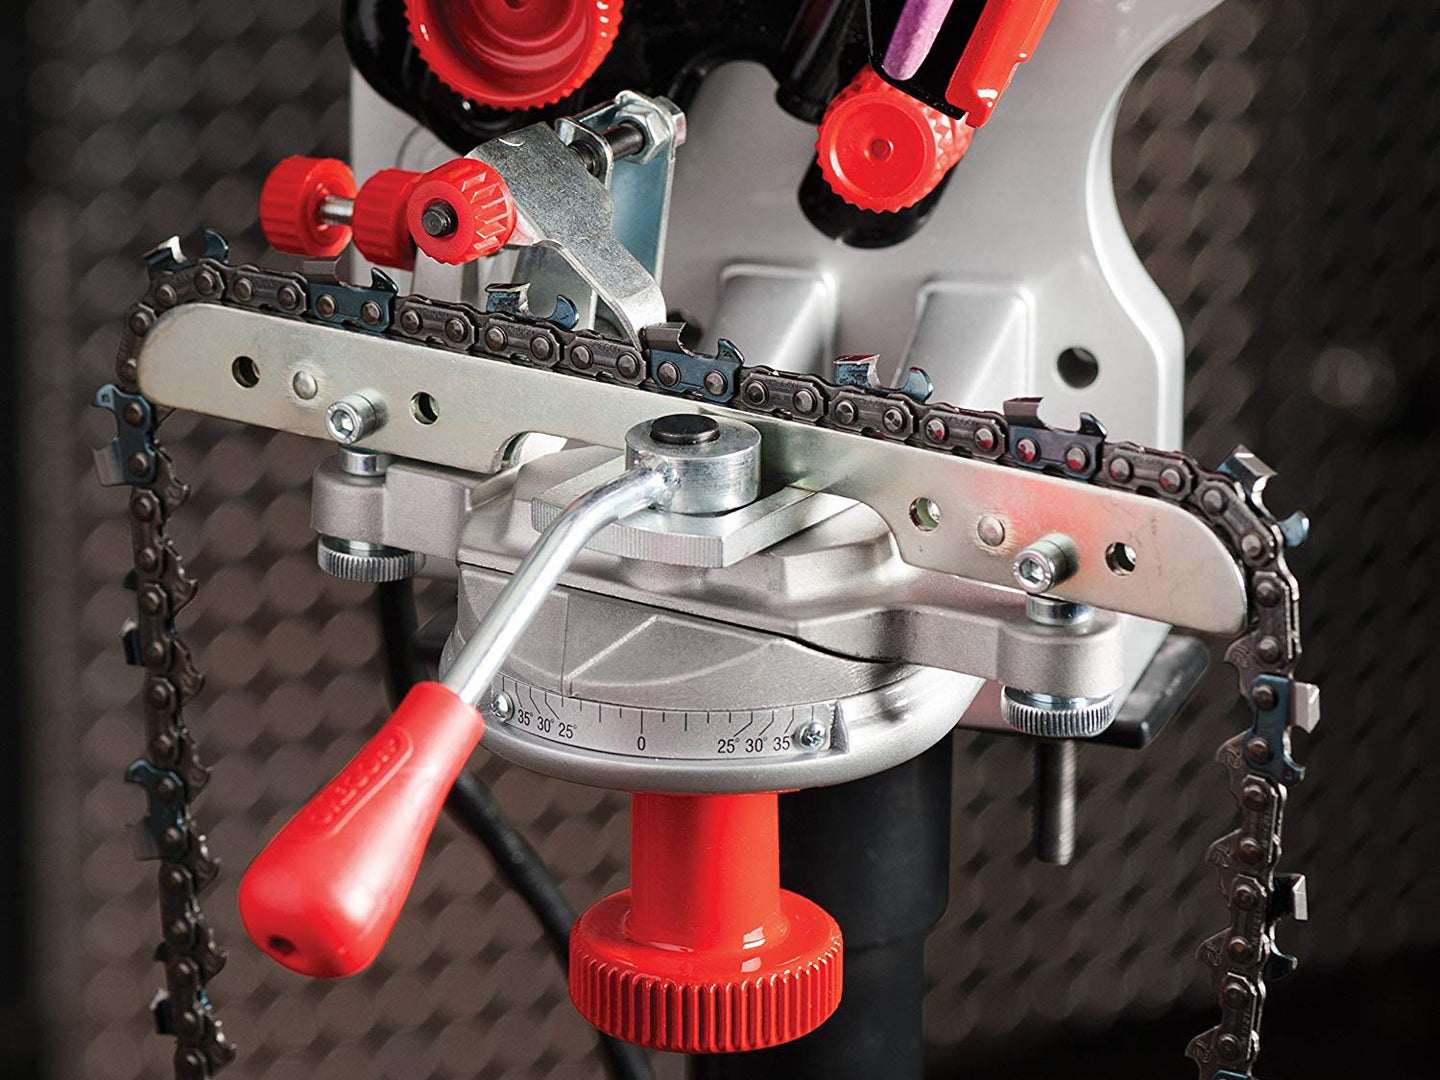 A chainsaw chain being sharpened.